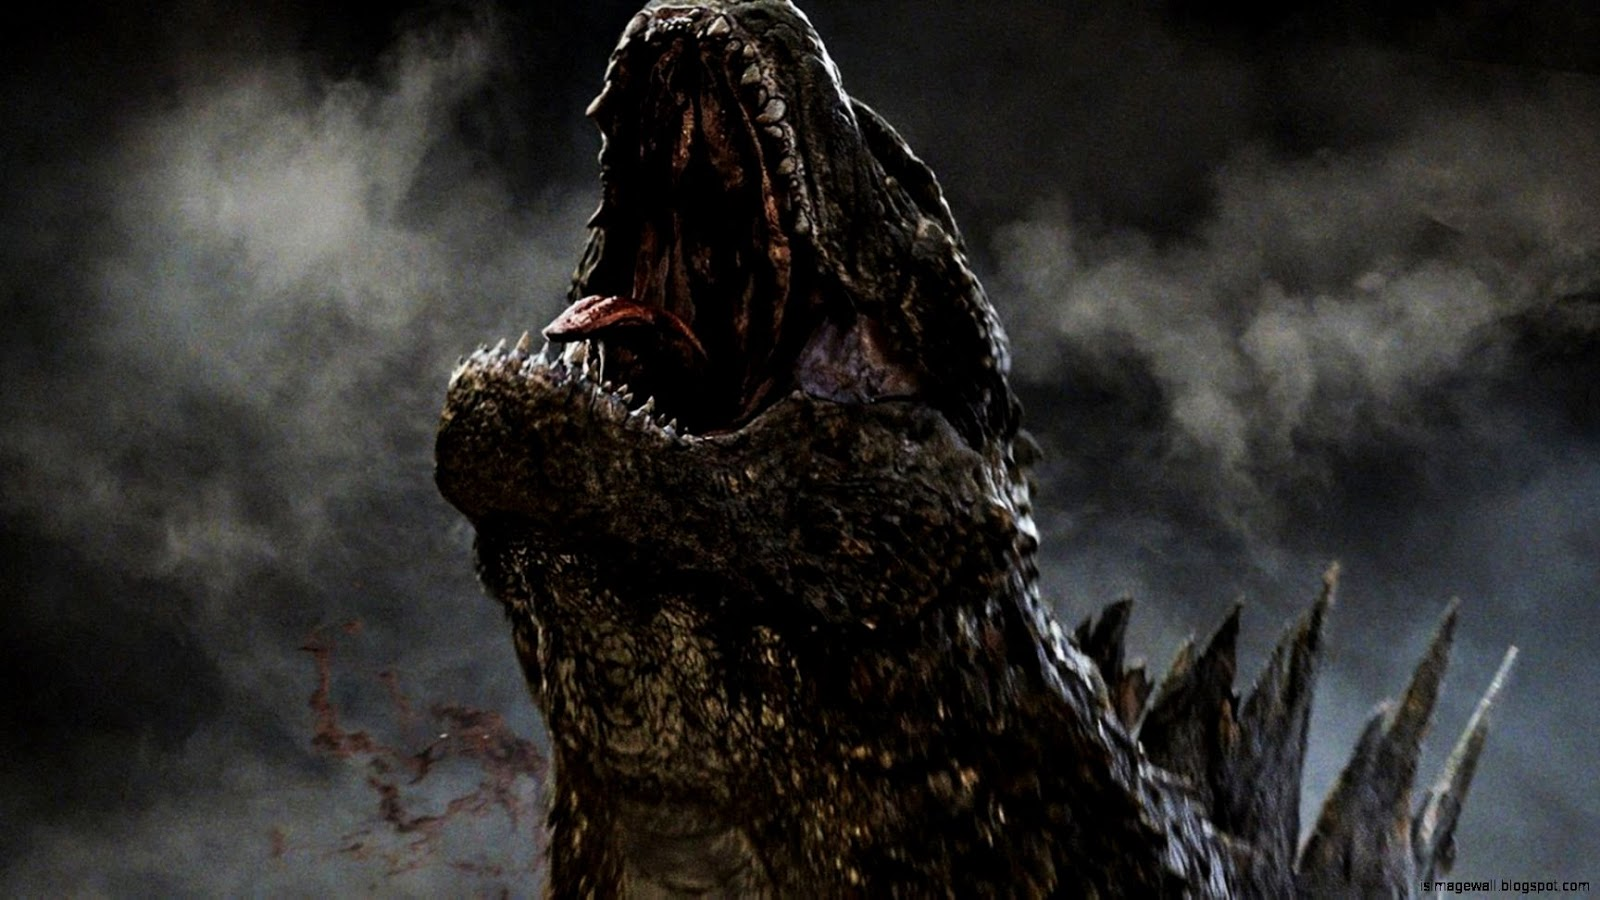 Michael Dougherty to direct 'Godzilla 2